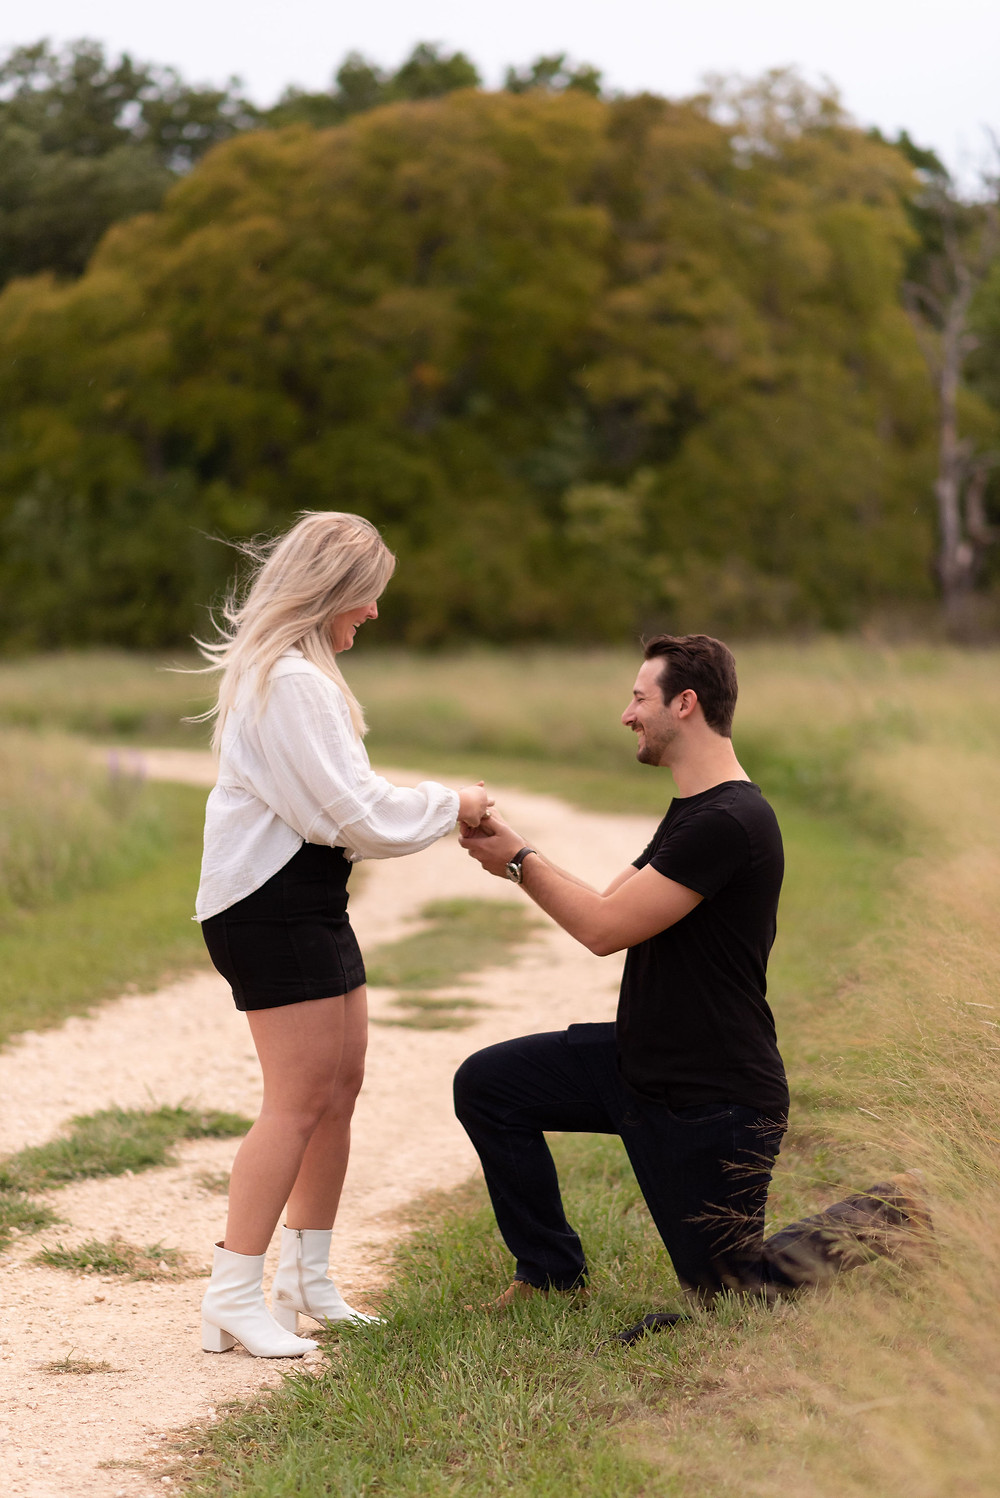 guy down on one knee during proposal